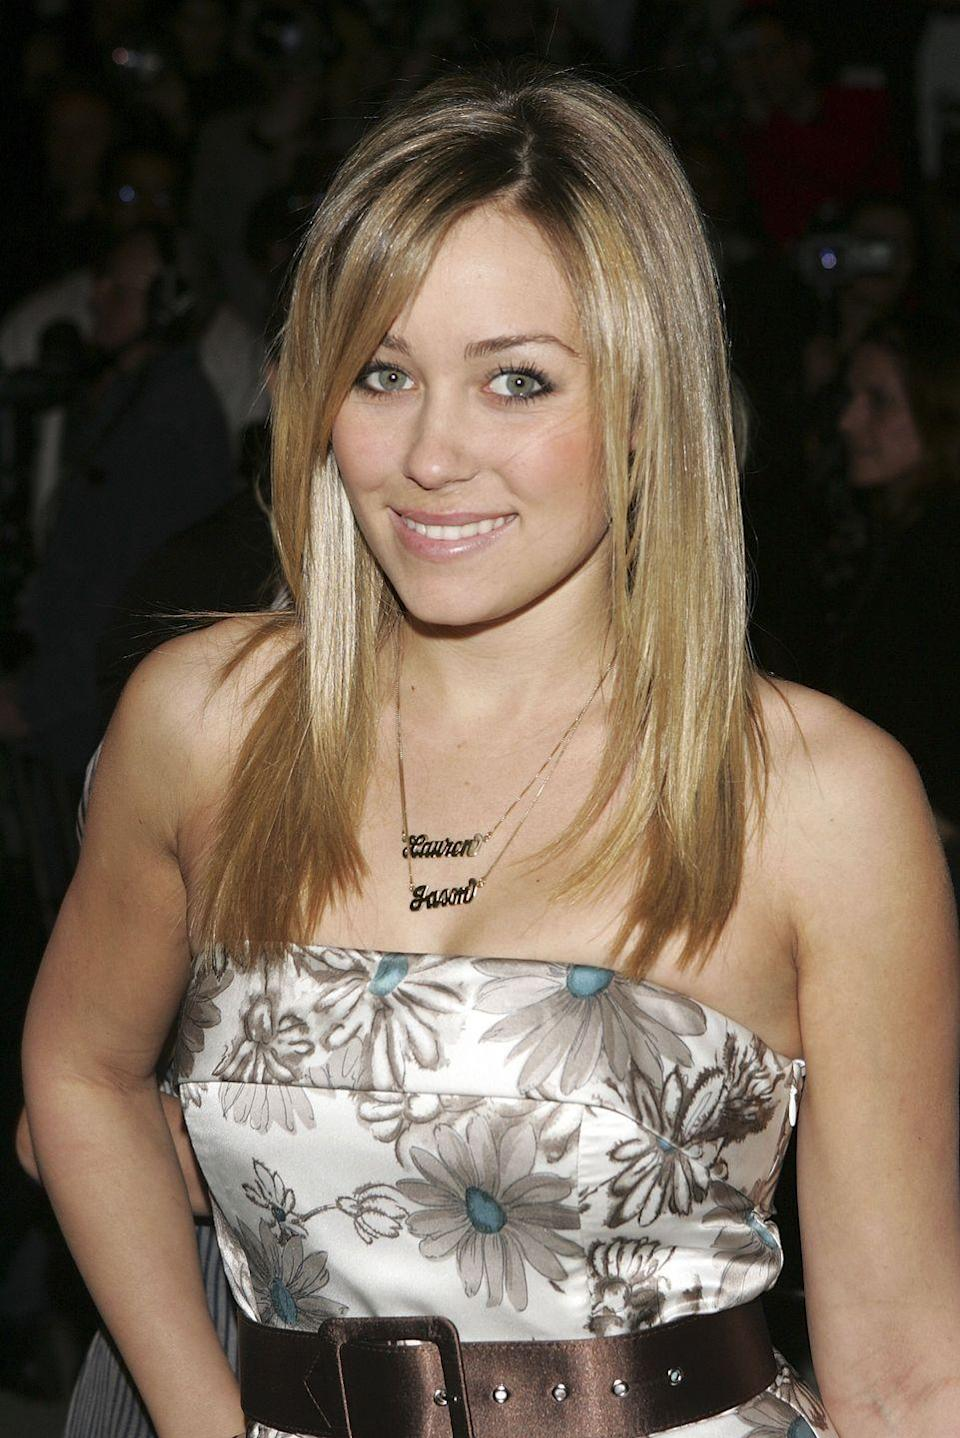 <p>Who could forget watching Lauren Conrad straightening her hair before a night out at Les Deux or Area? Pin straight hair was everything back in the late 2000s. </p>